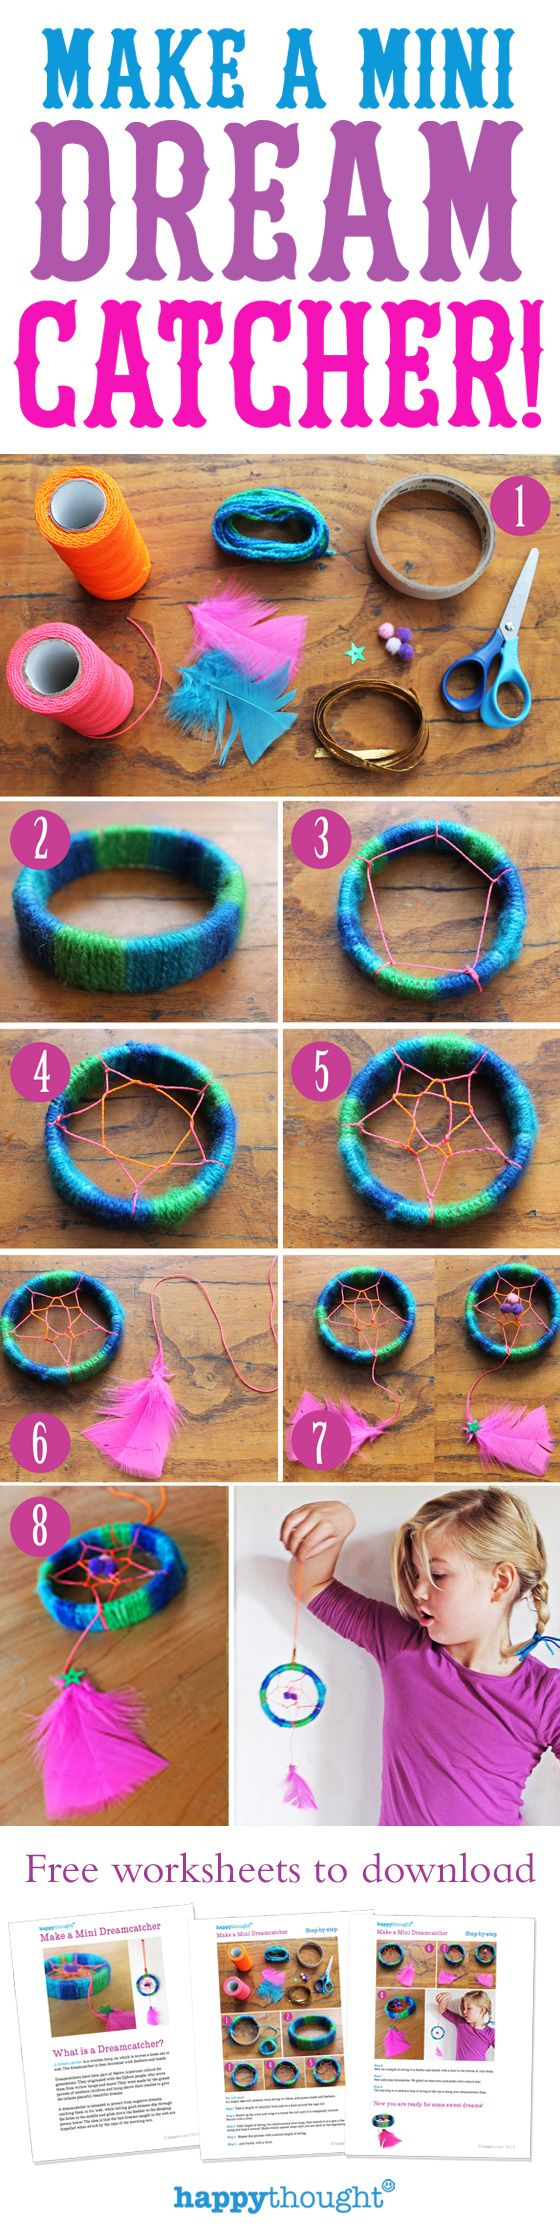 You too can make a mini dreamcatcher by using bits and pieces from your craft box at home and following this easy Happythought video tutorial. Sweet dreams!